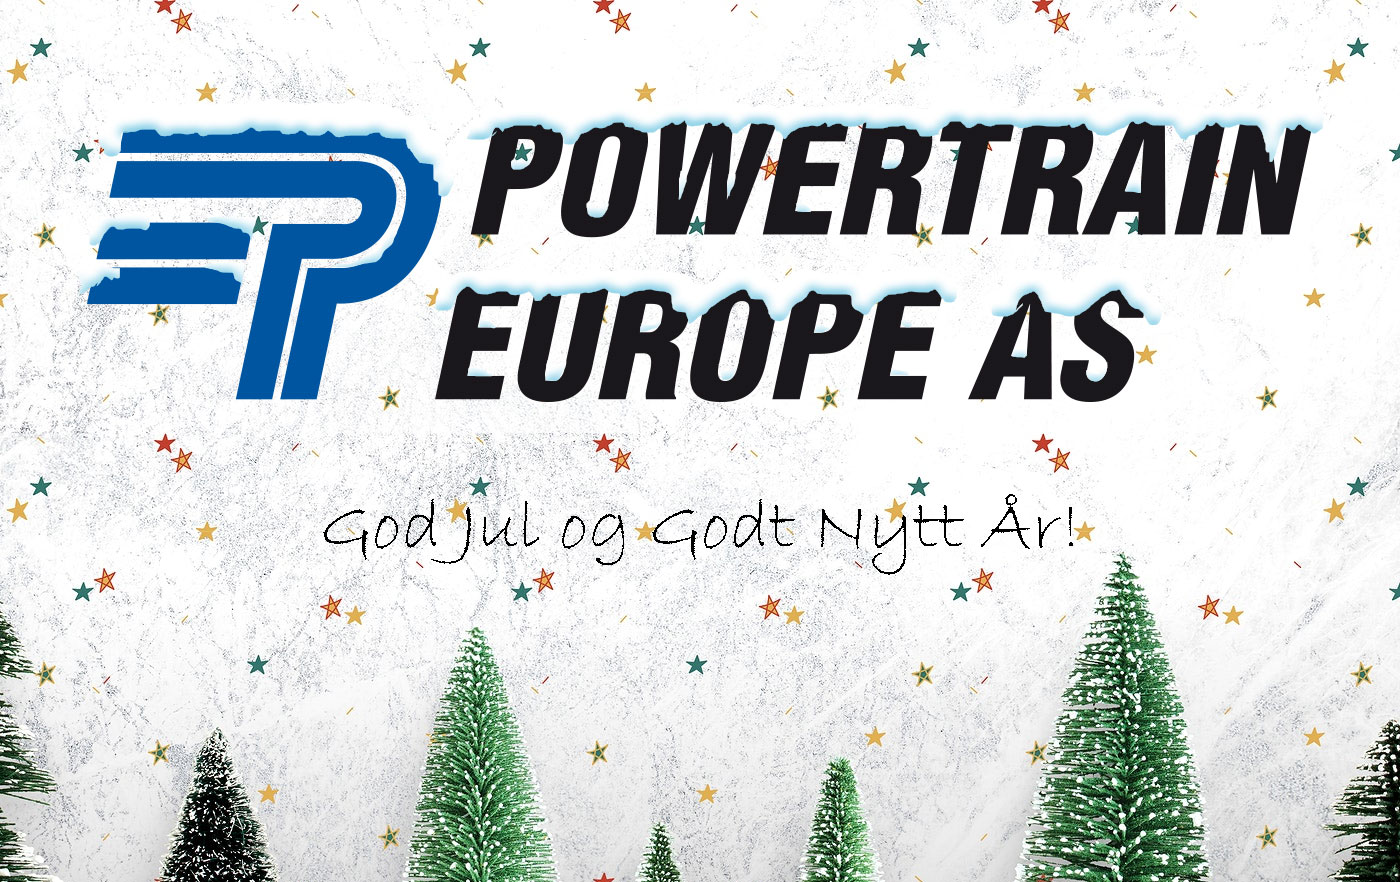 God Jul fra Powertrain